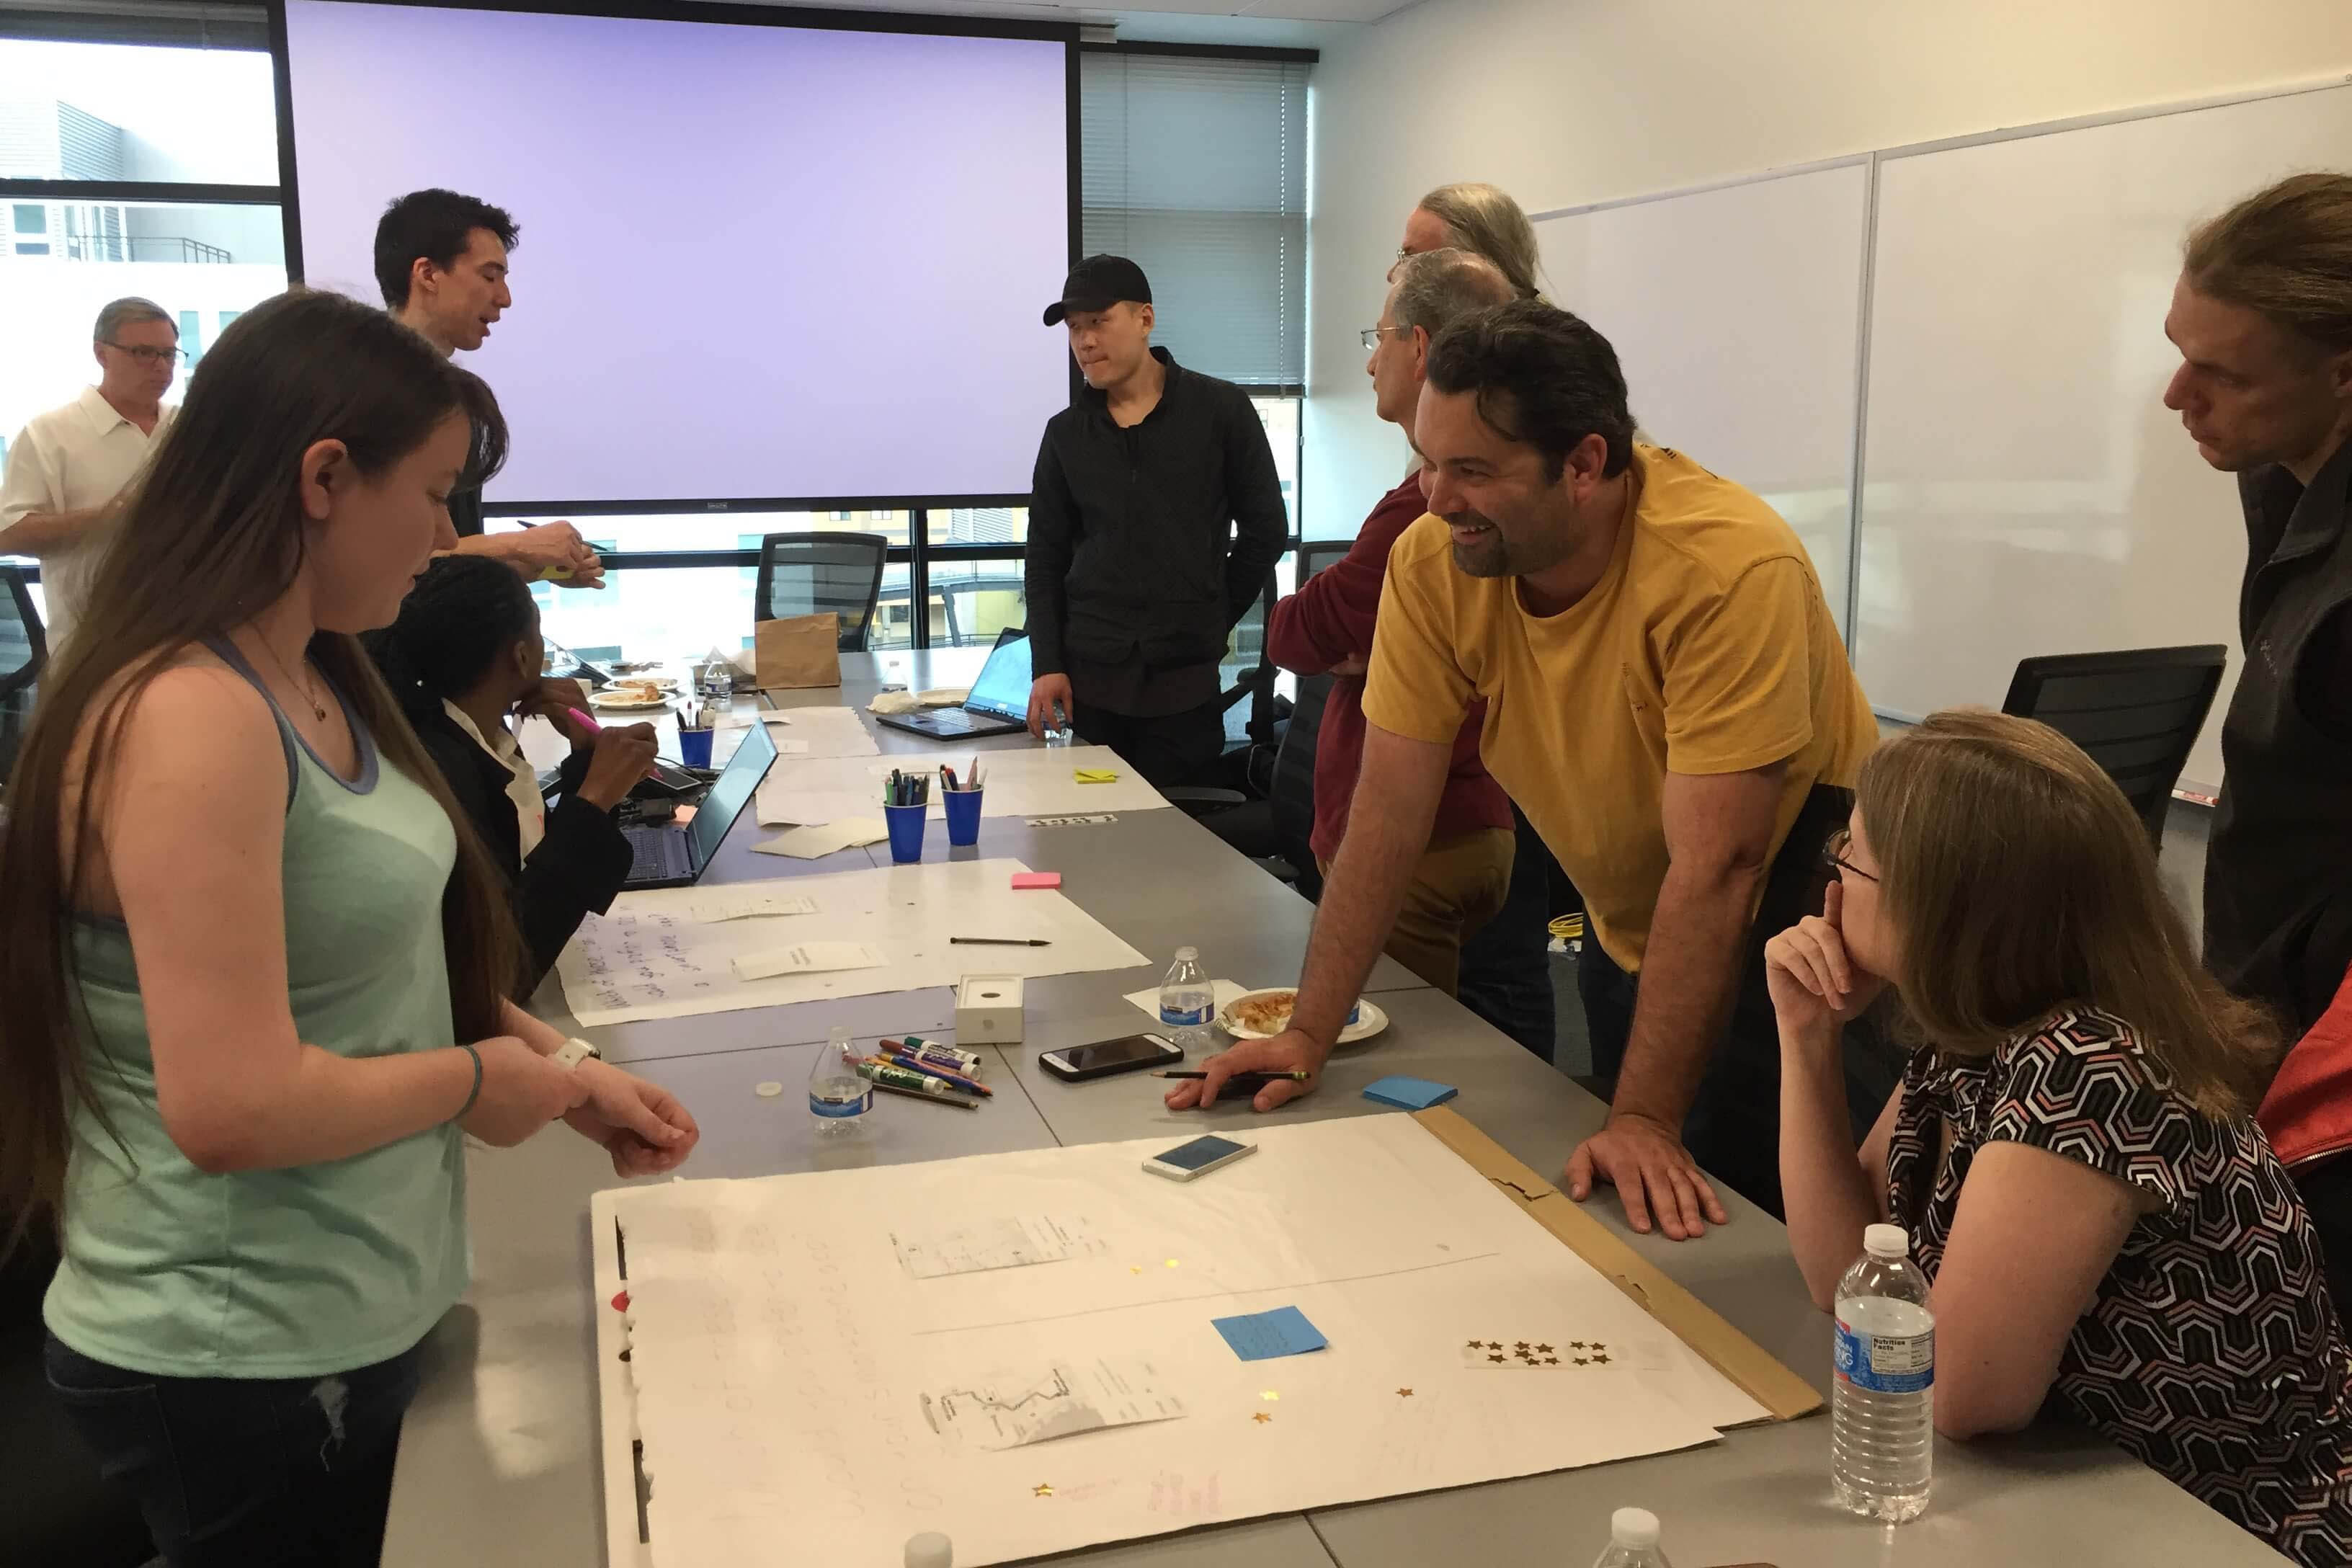 Design exercises and ideation with WA drivers